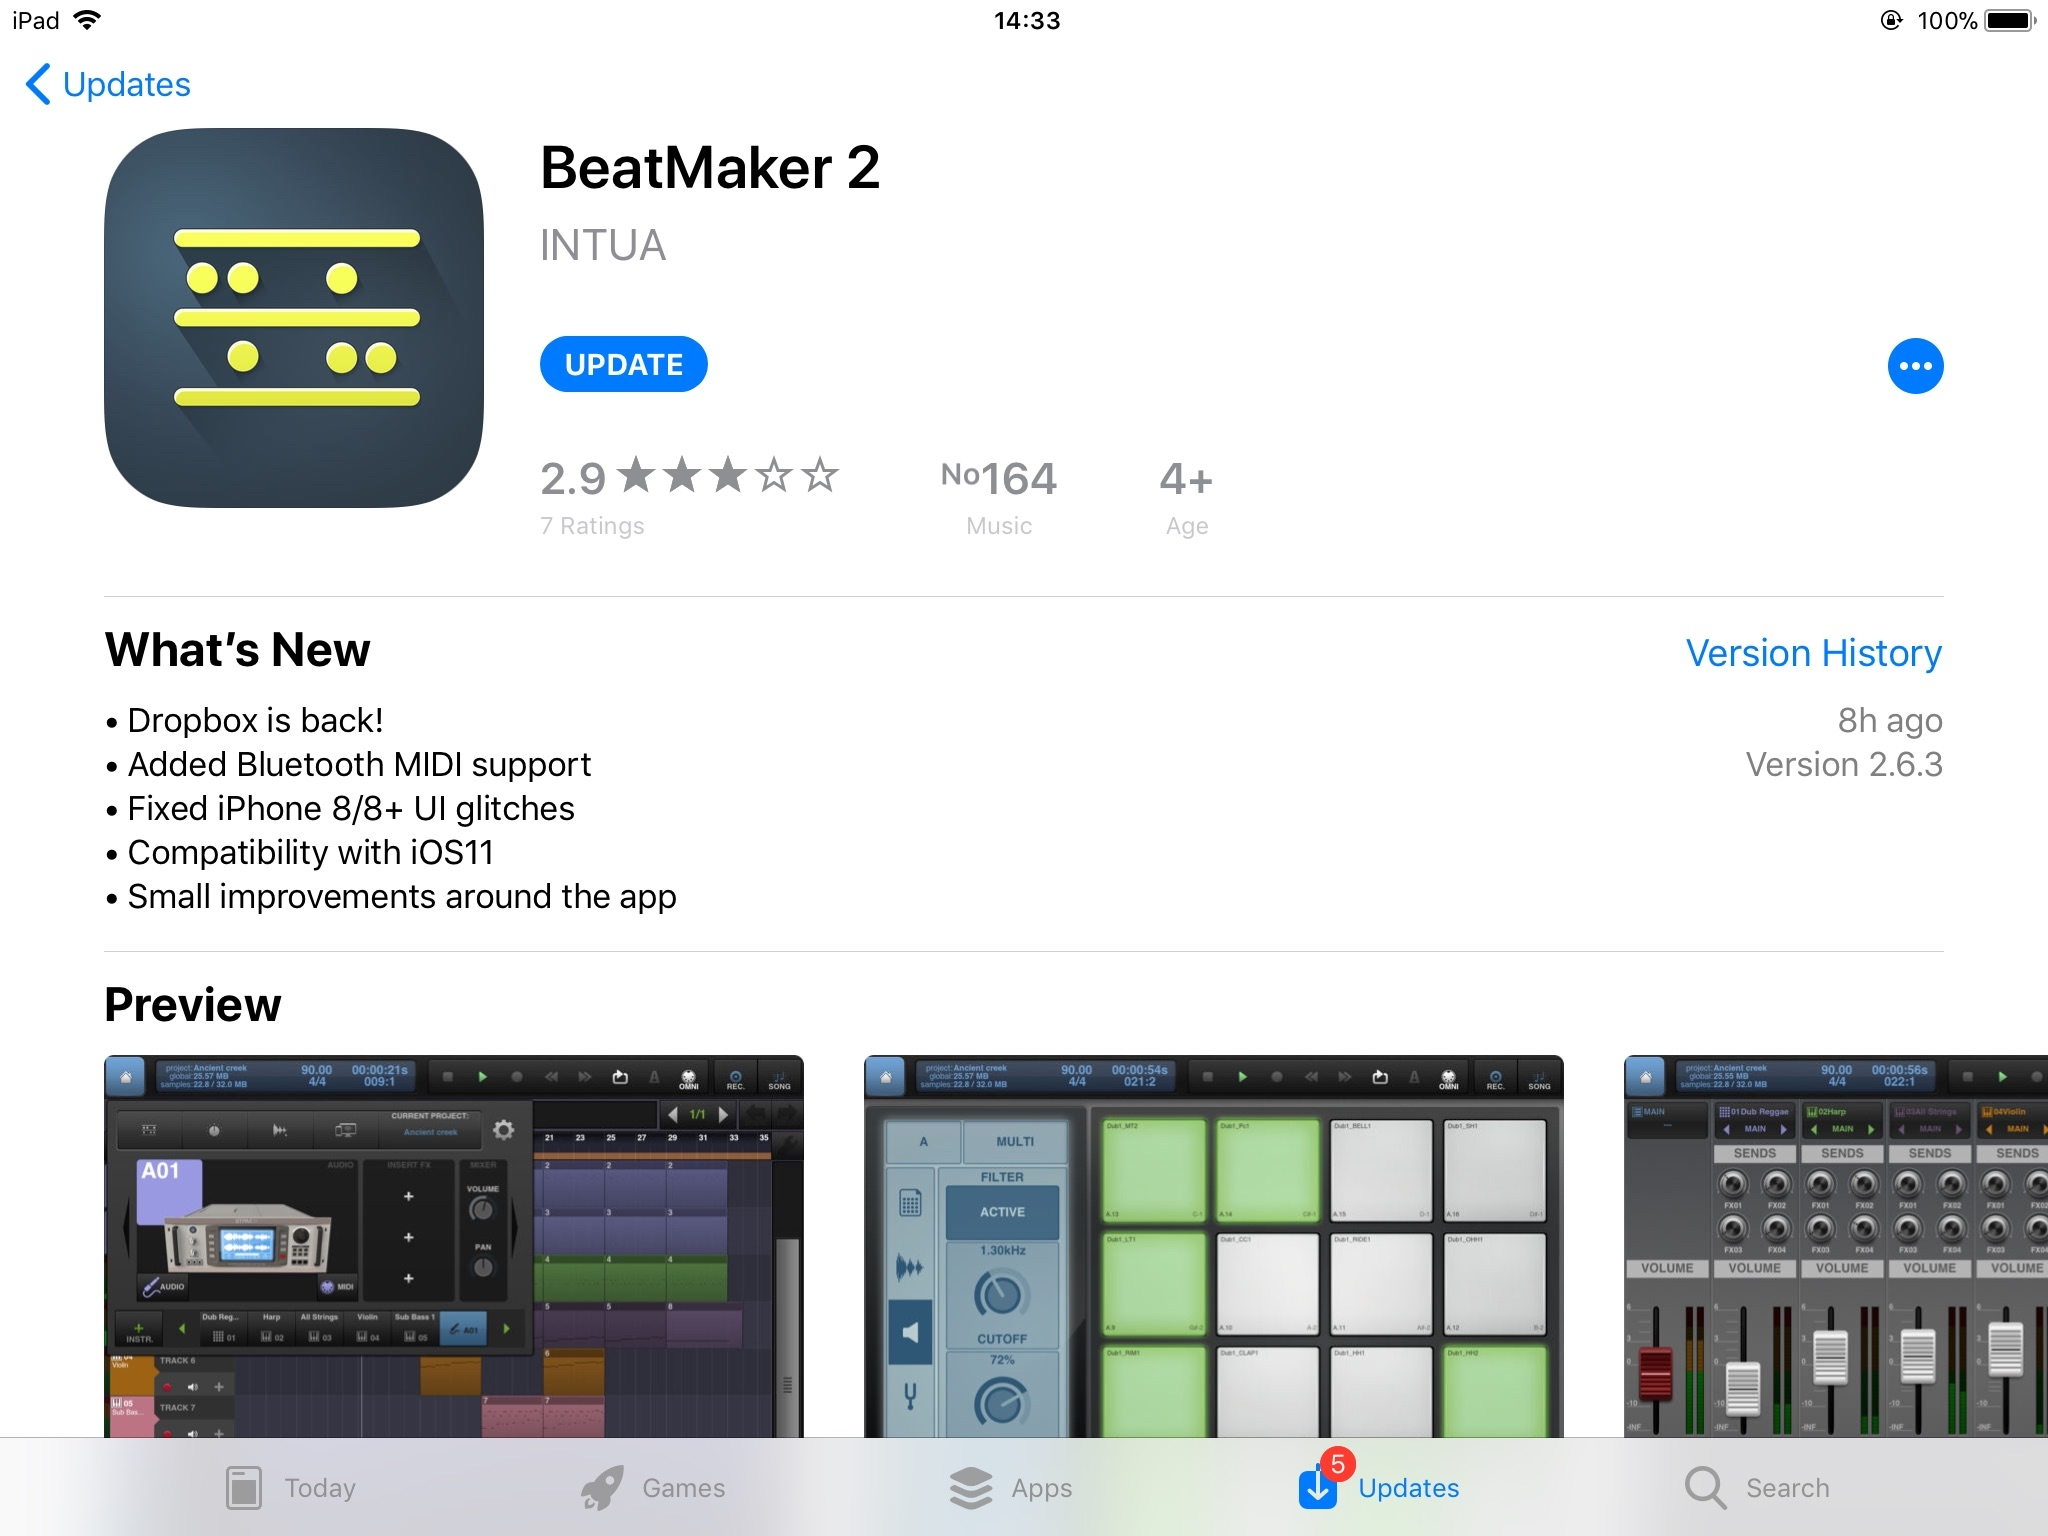 beatmaker 2 is alive and well updated again today 20 10 17 rh intua net Beat Maker 2 iPhone 6 Beat Maker 2 App